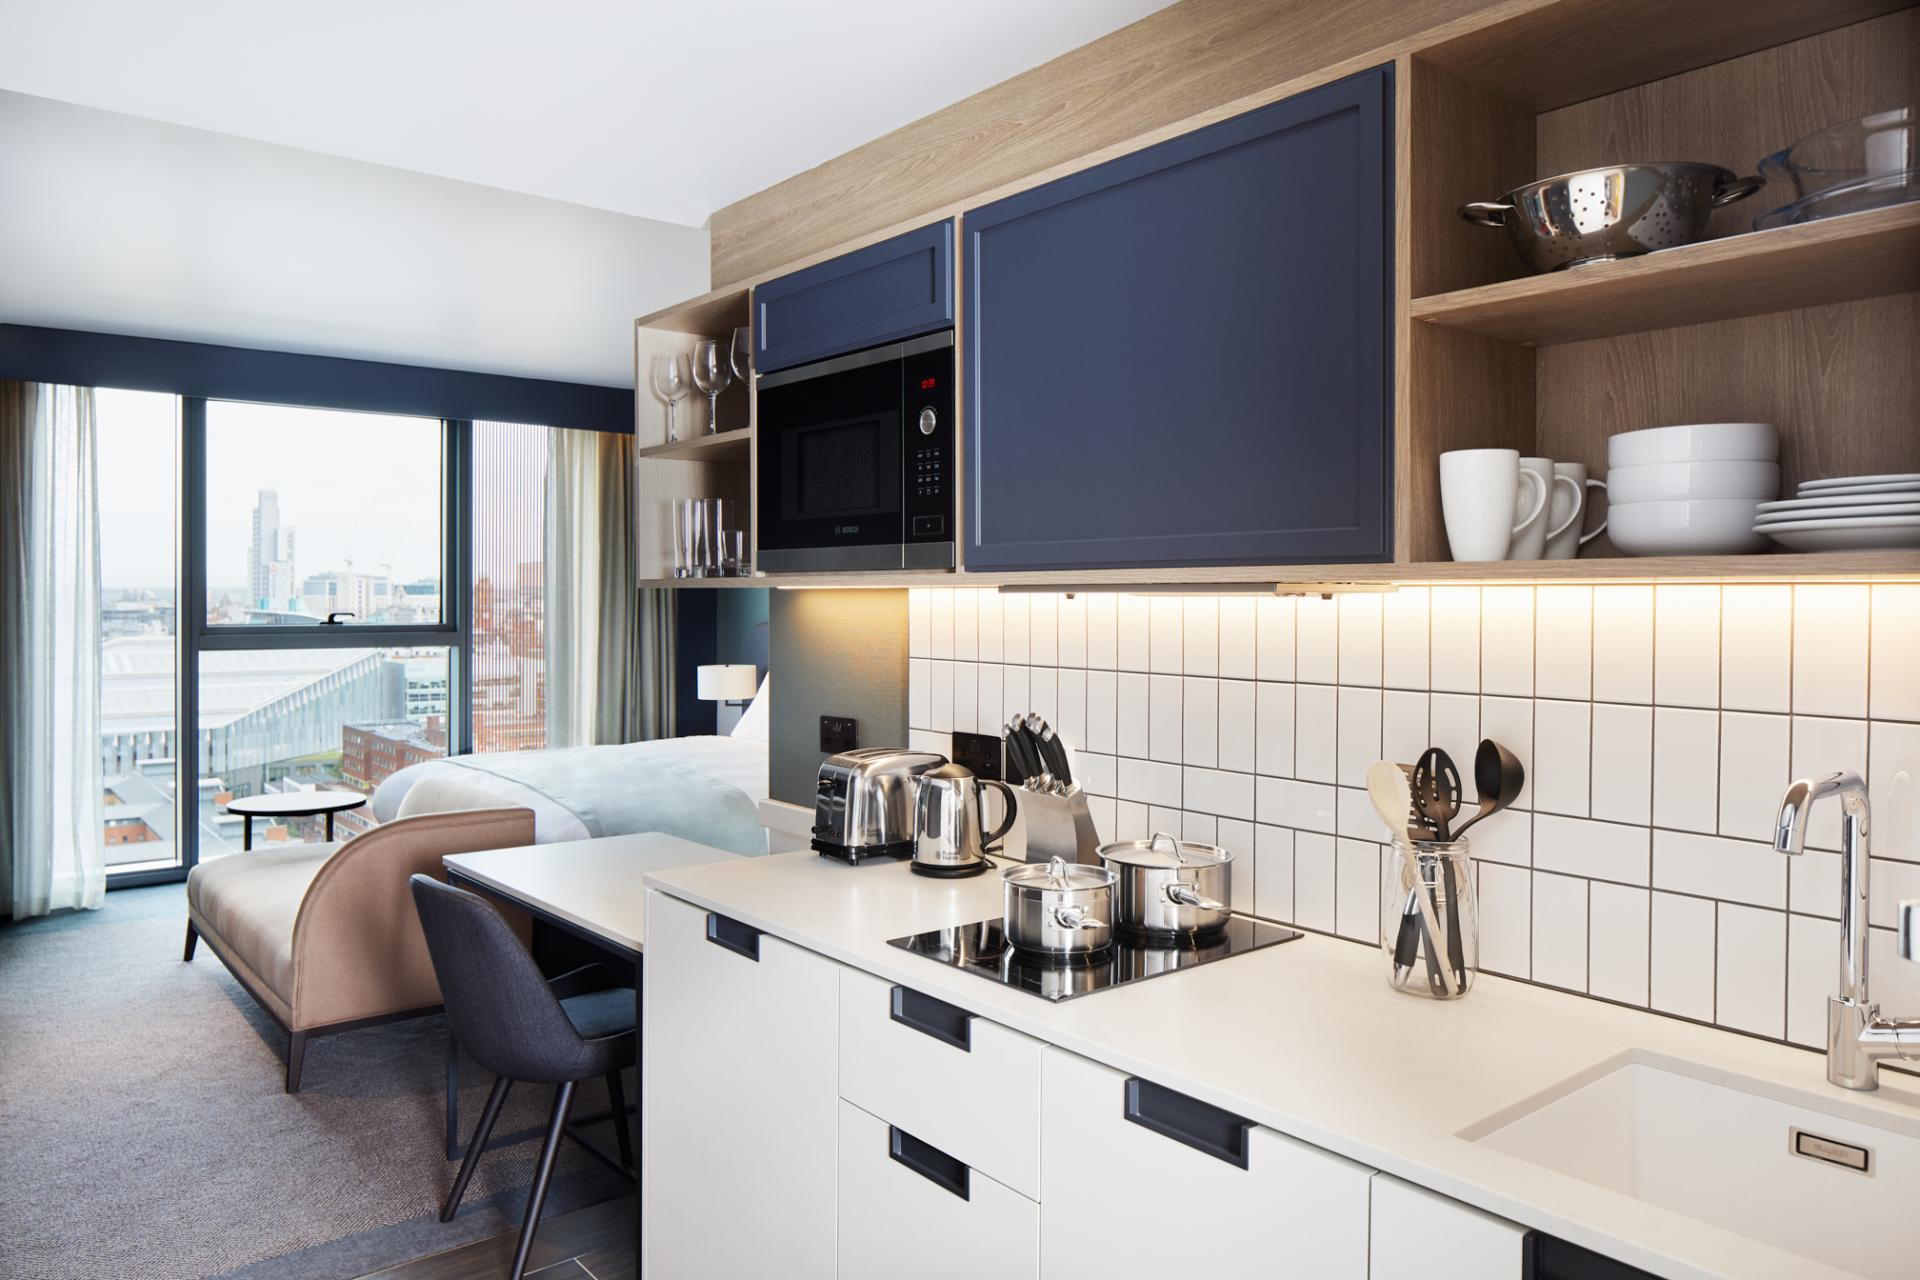 Kitchen at Hyatt House Manchester, Hulme, Manchester - Citybase Apartments